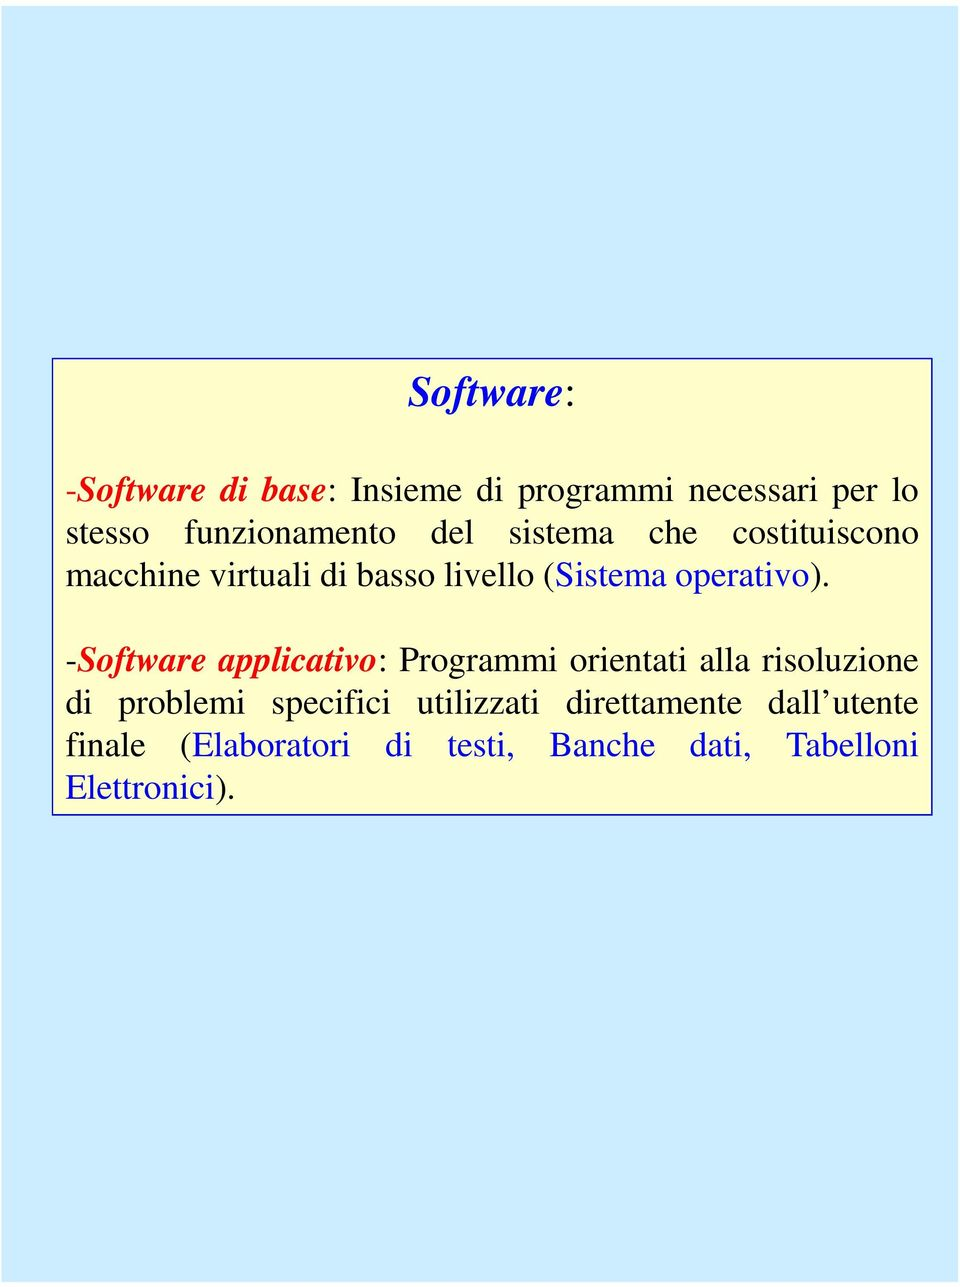 -Software applicativo: Programmi orientati alla risoluzione -Software applicativo: Programmi orientati